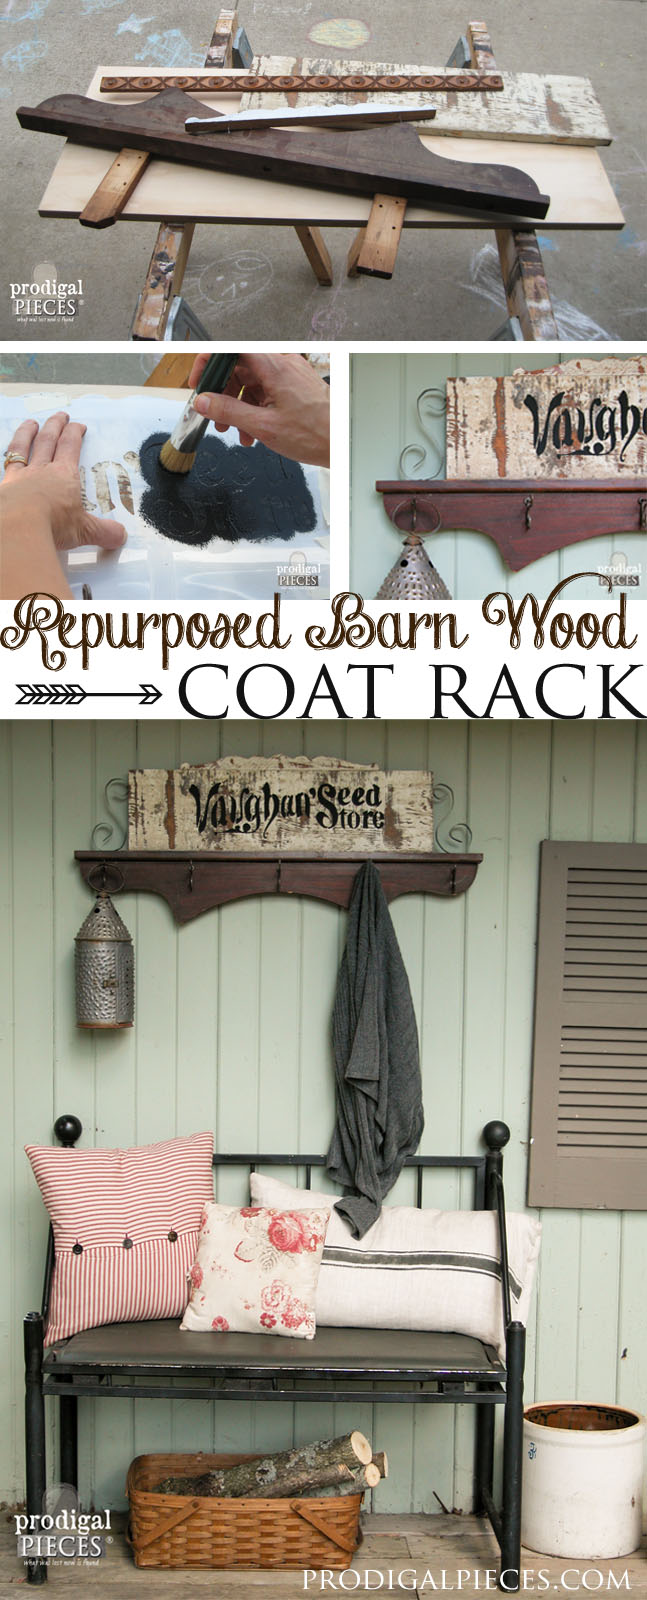 Repurposed Barn Wood Coat Rack by Prodigal Pieces | www.prodigalpieces.com